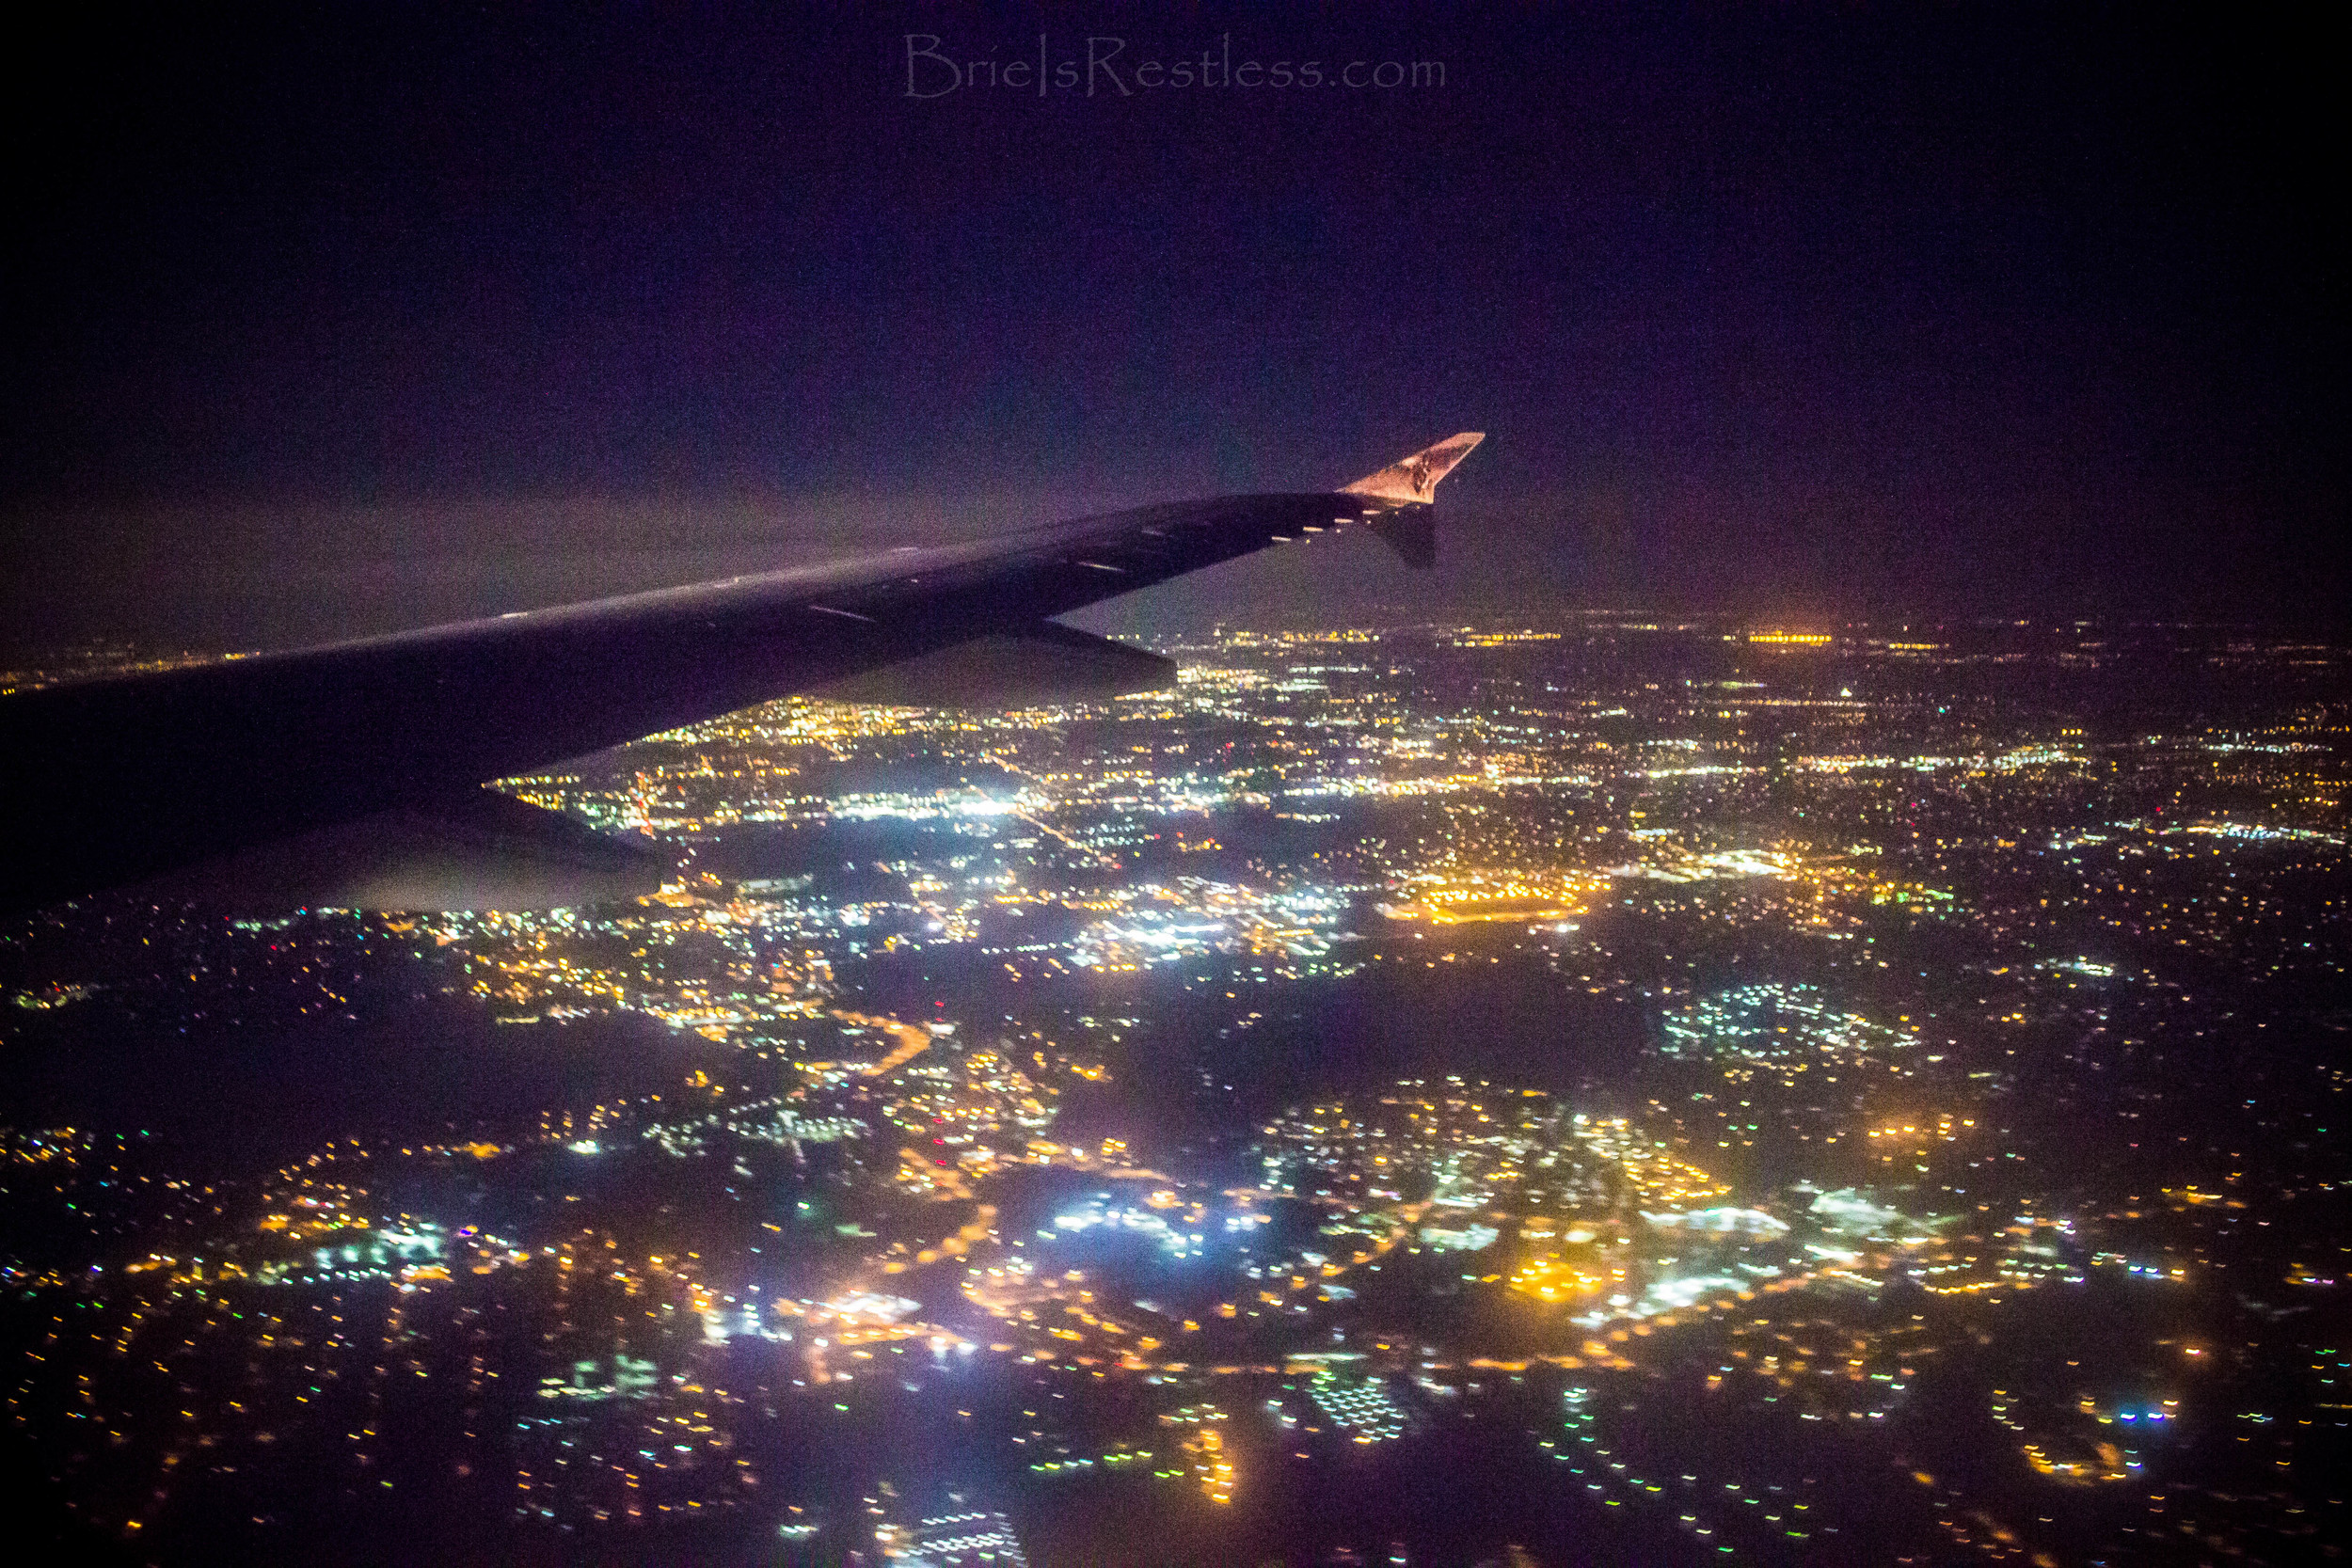 Orlando Florida - Frontier FLight - Red Eye - City Lights Outdoors - Plane Wing - June 2015 (1 of 1).jpg